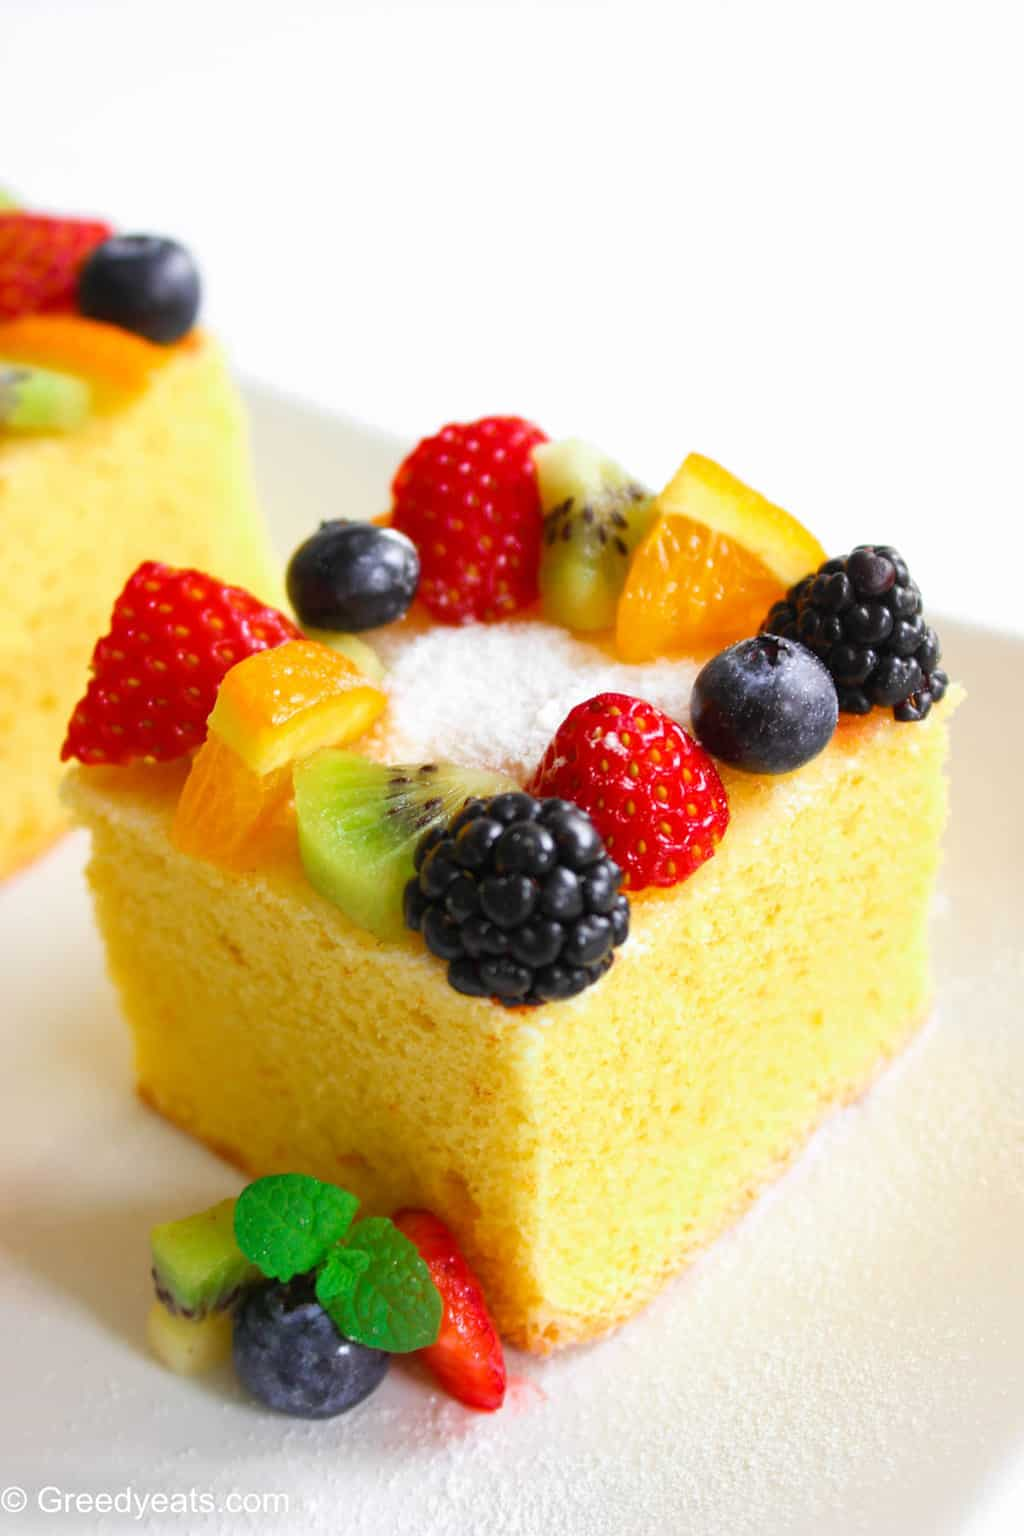 A slice of fluffy lemon cake topped with confectioners' sugar and fresh fruit toppings.